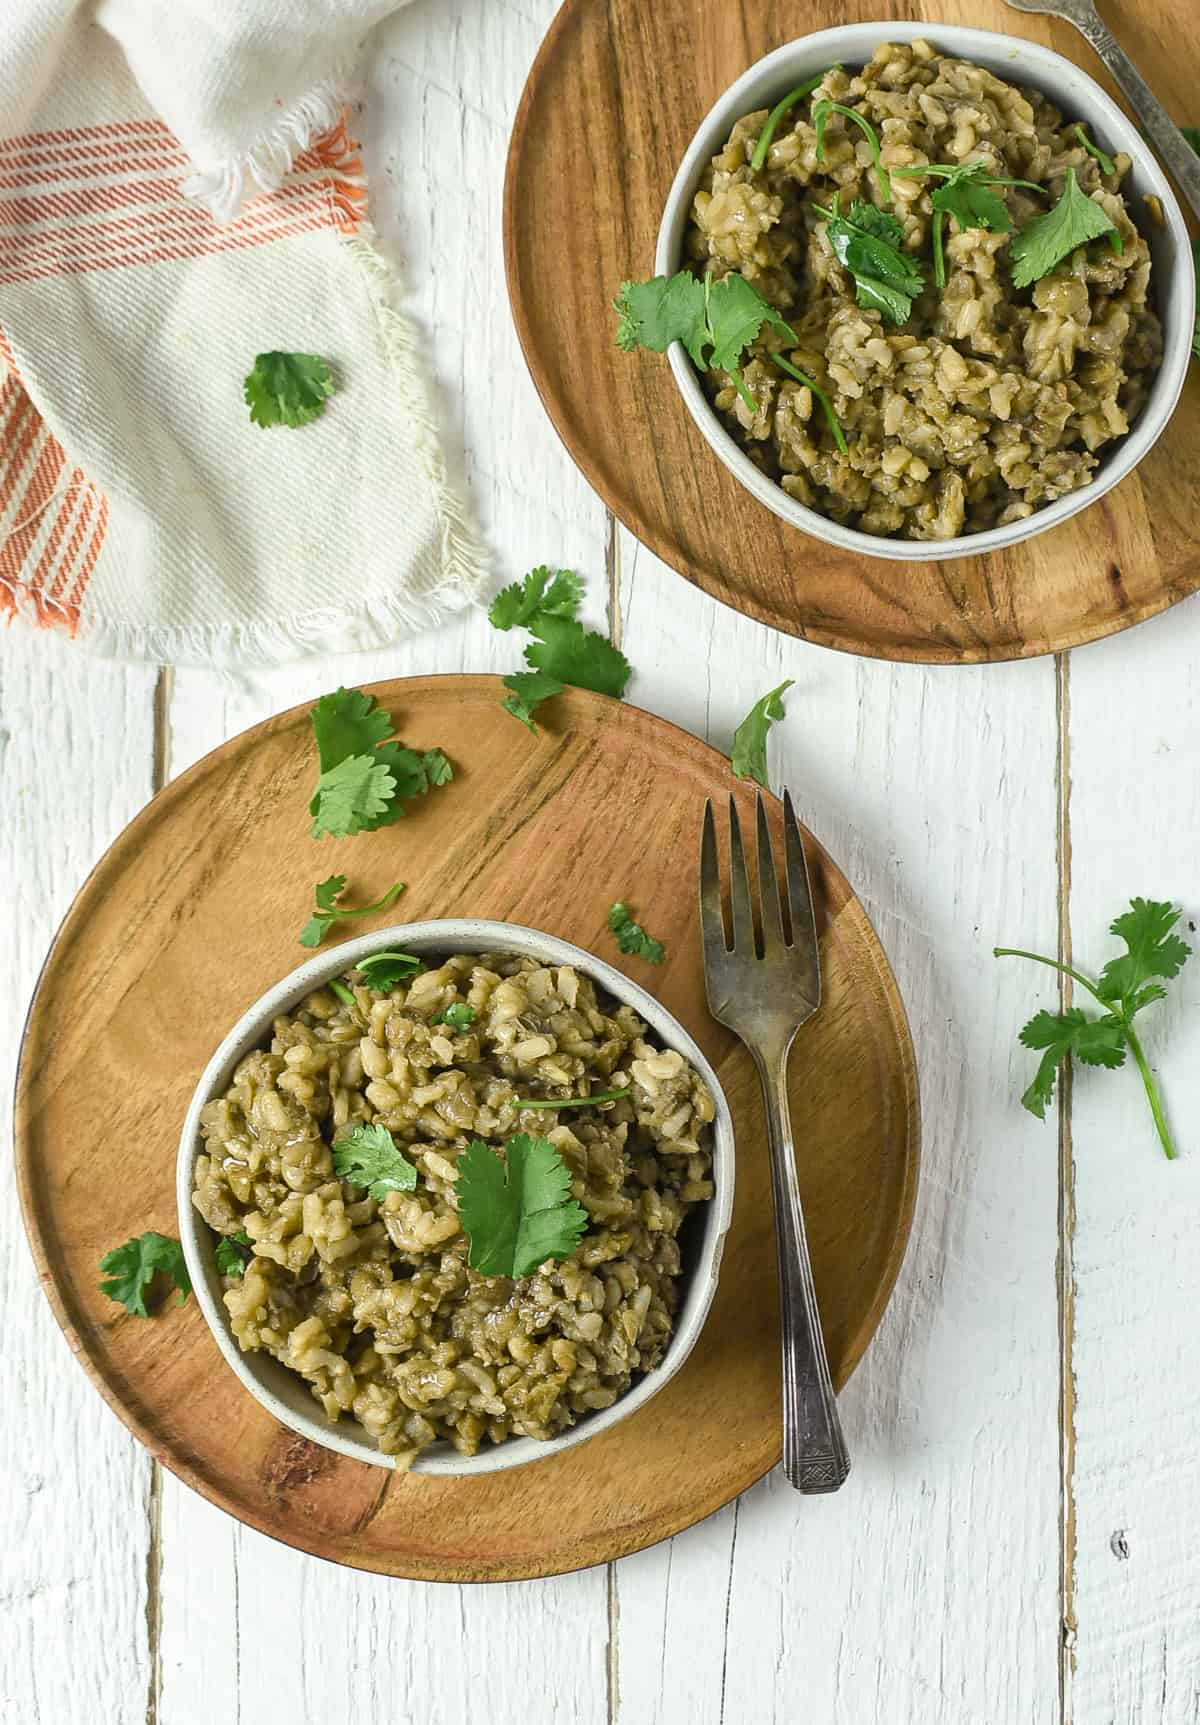 brown rice and lentils in white bowls.